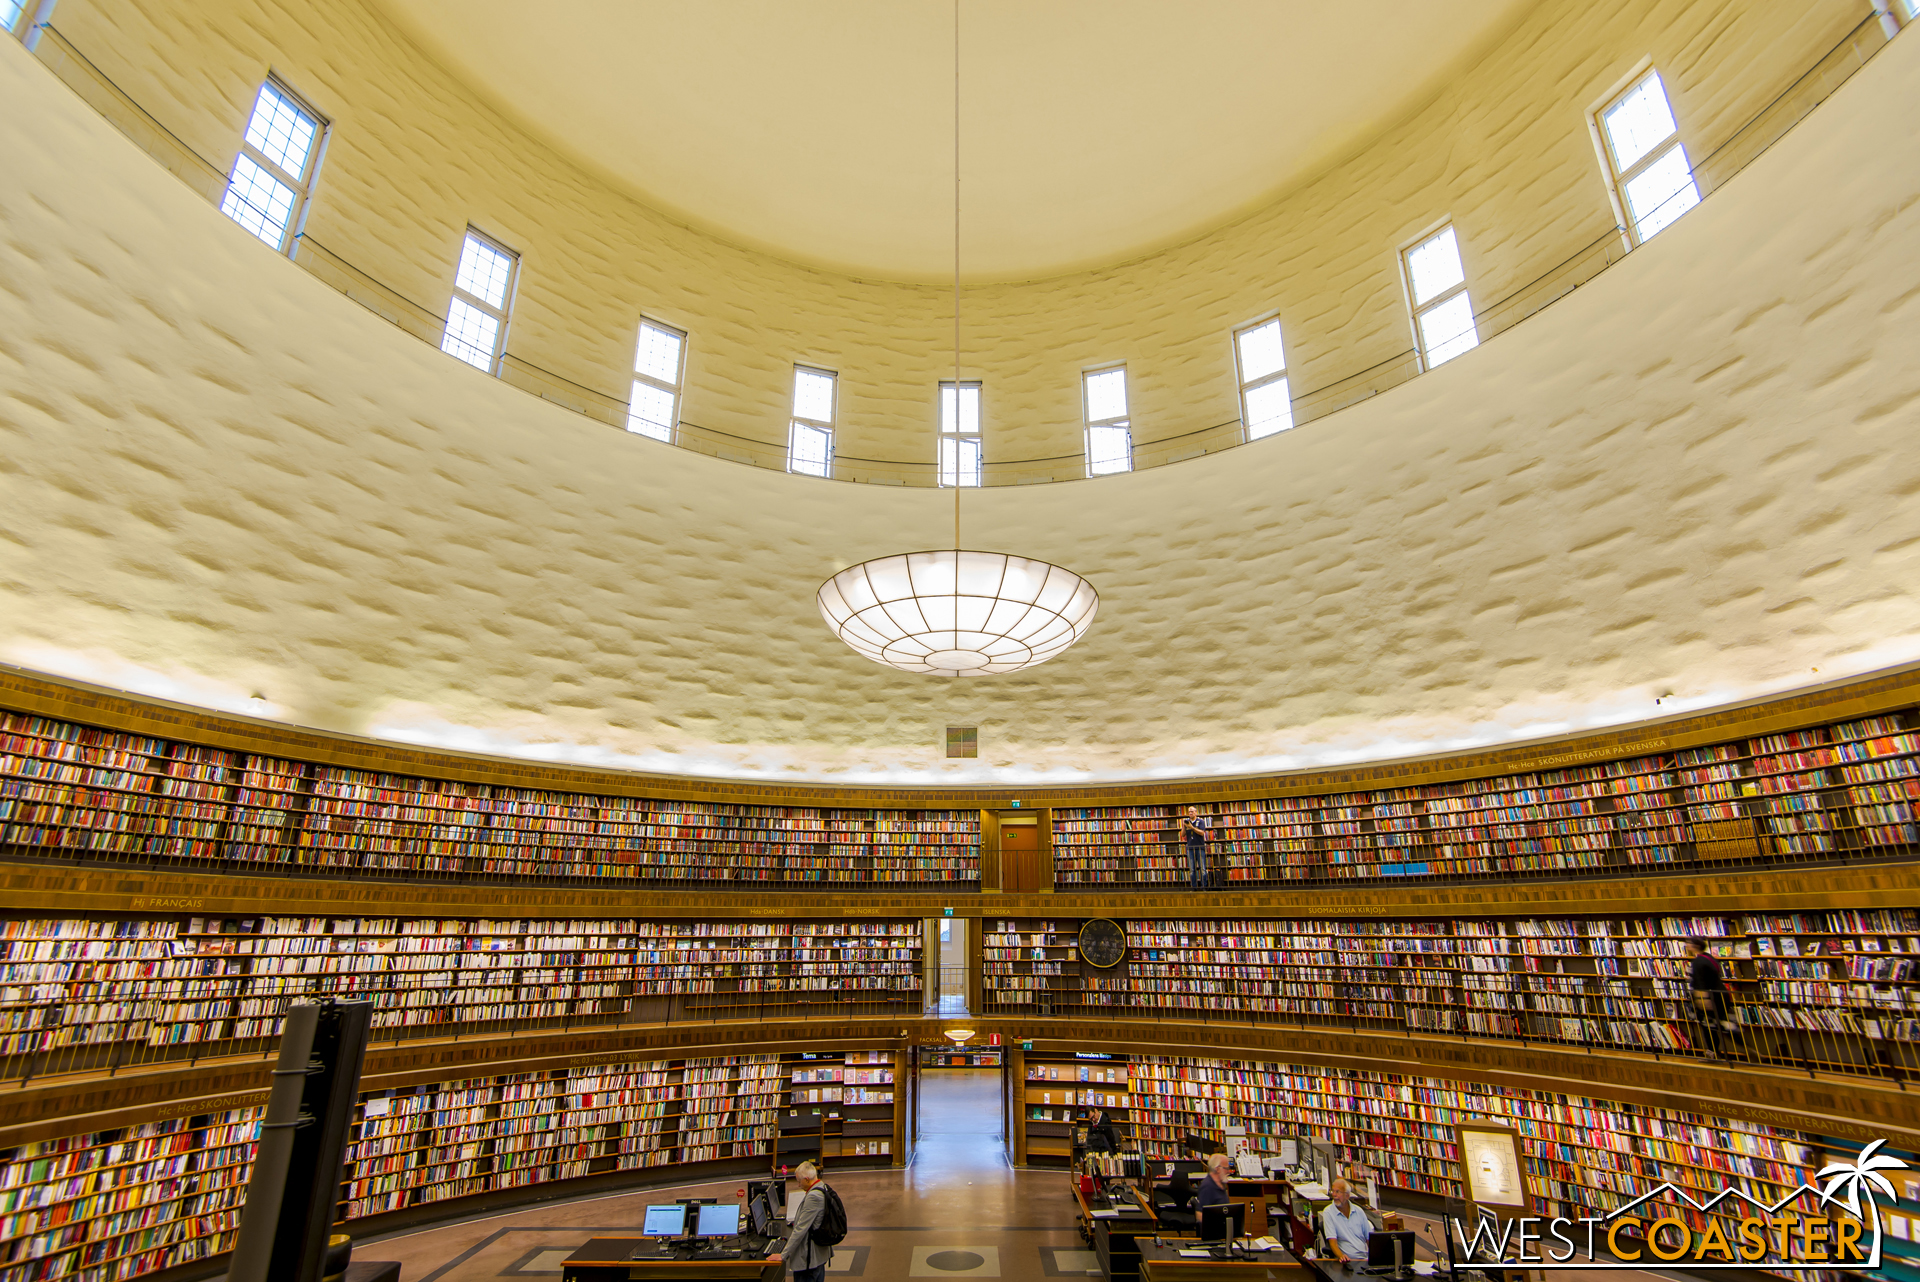 Gunnar Asplund's Stockholm Public Library is a significant work of architecture and illustrated his transition from a classical style to a more modern and functional one.